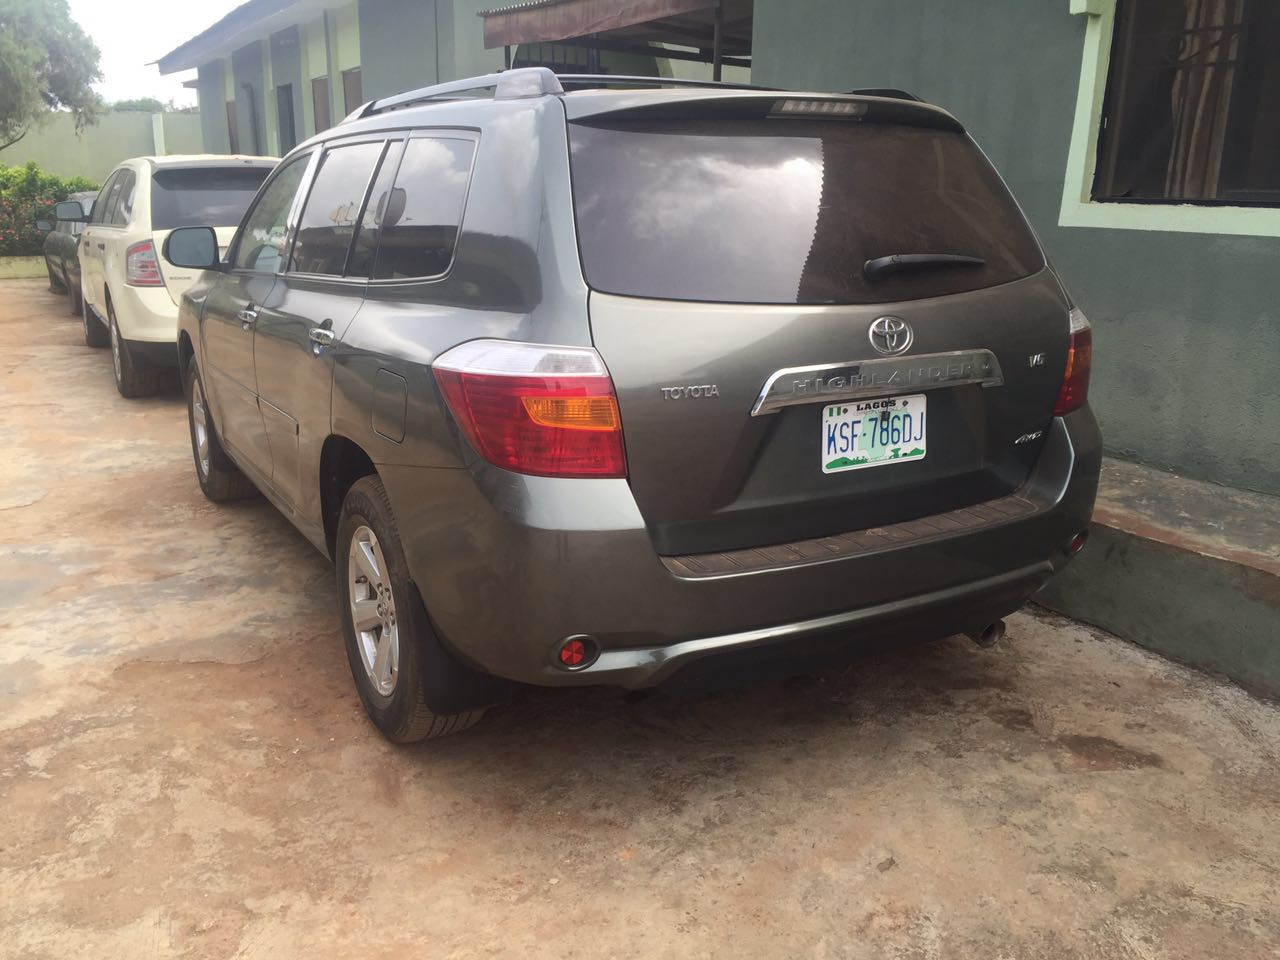 reg 2008 toyota highlander for sale autos nigeria. Black Bedroom Furniture Sets. Home Design Ideas